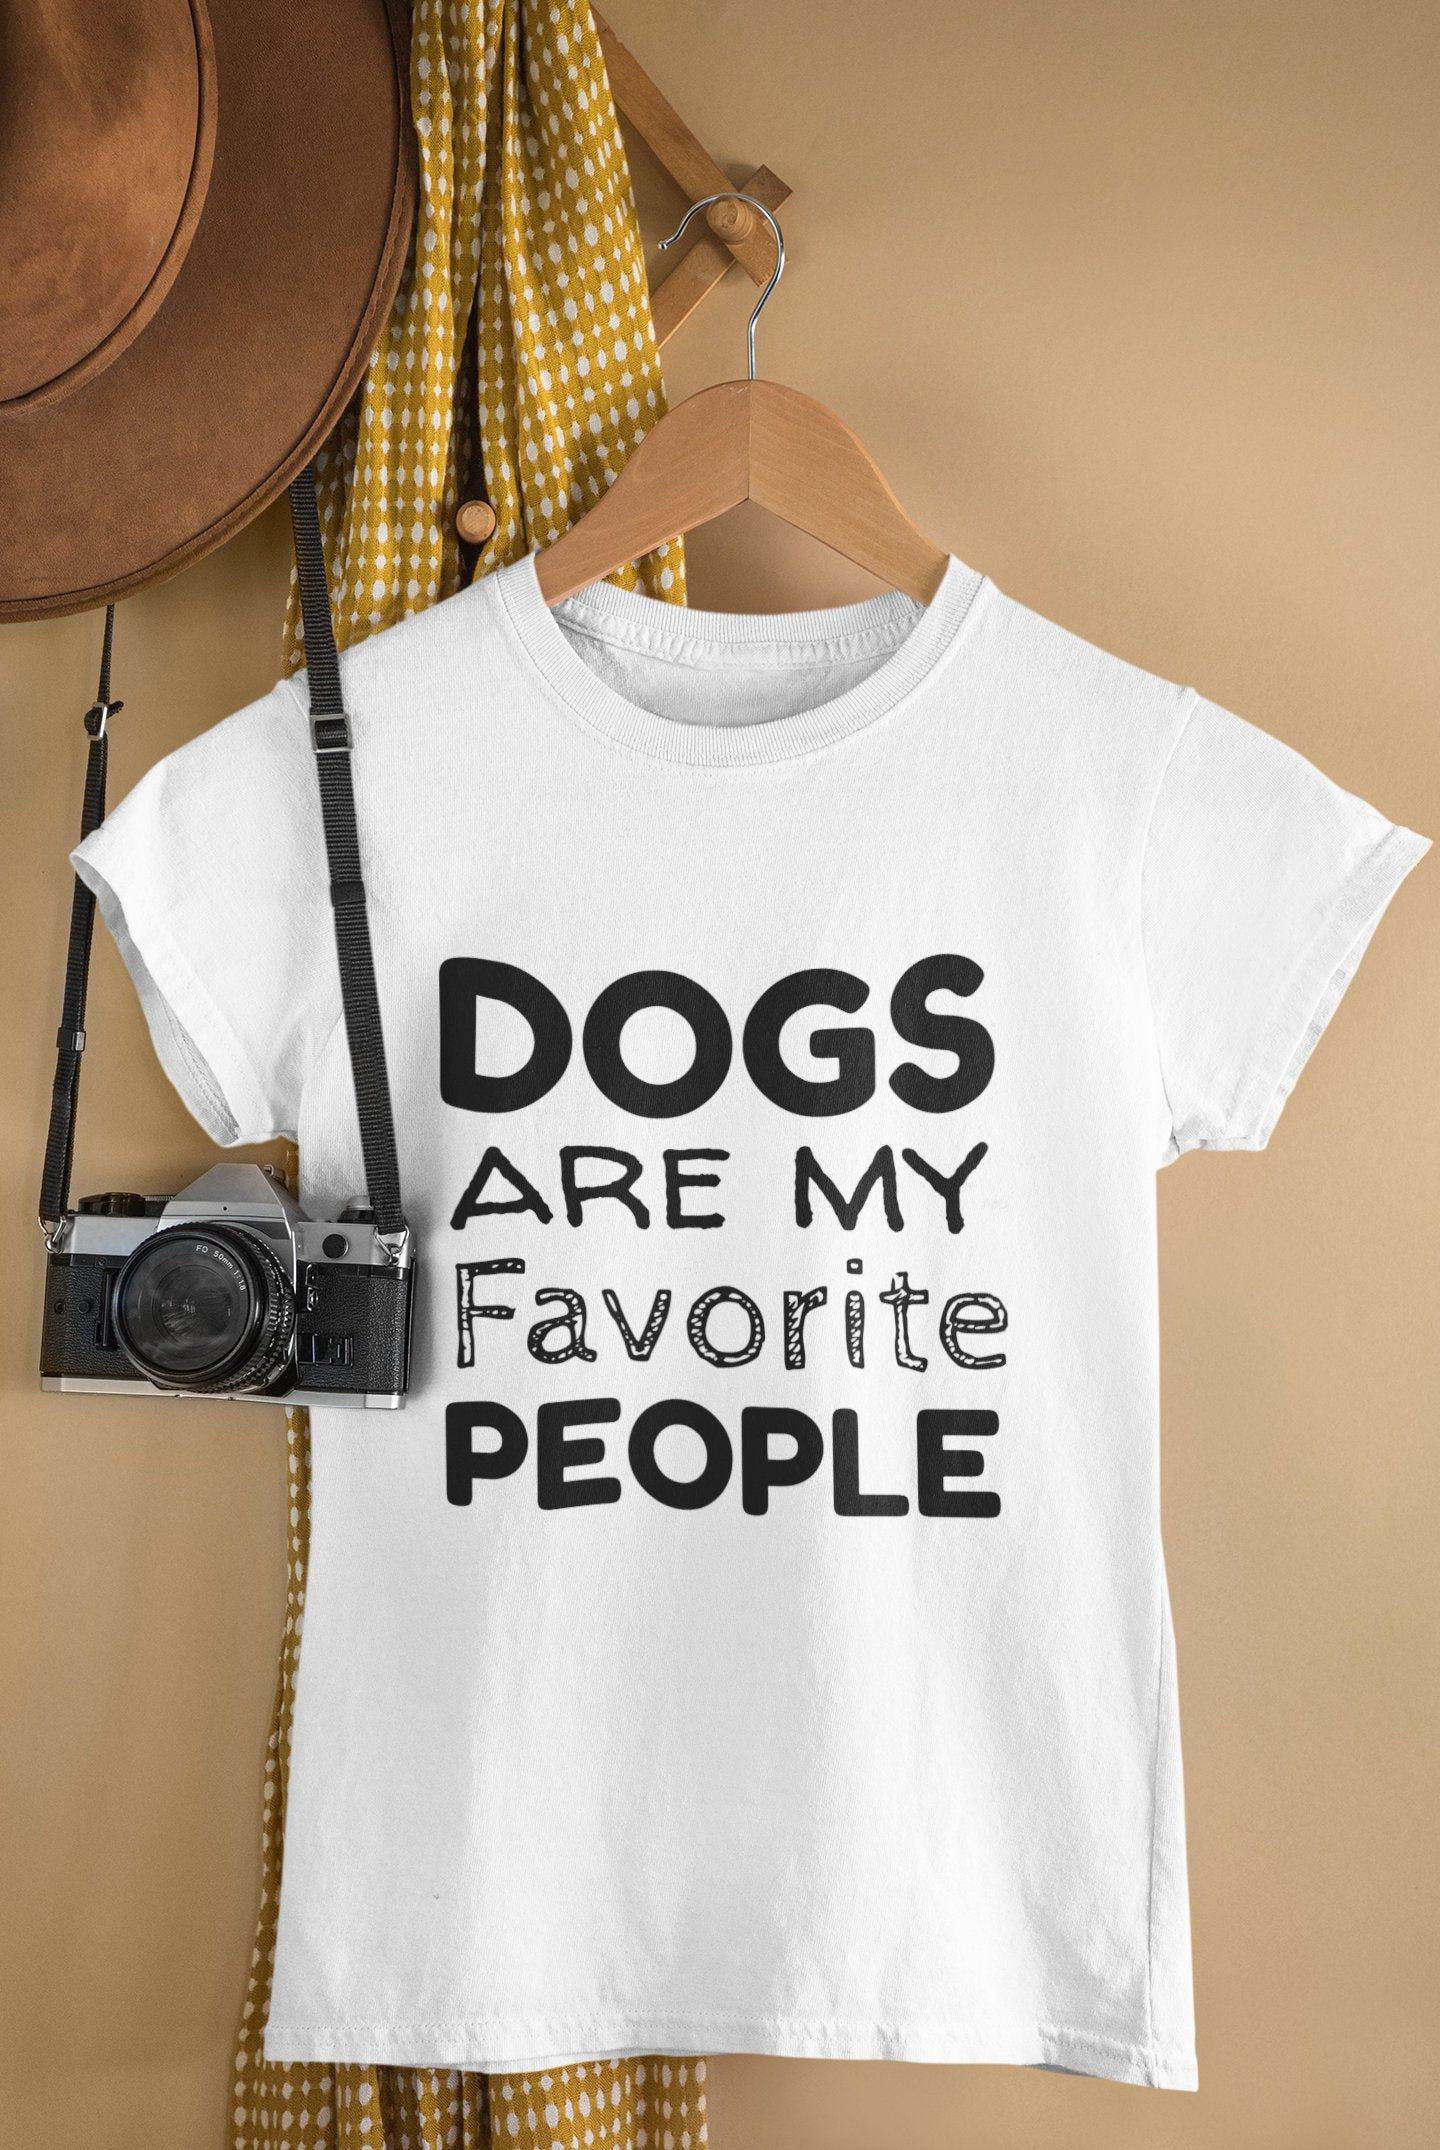 Dogs Are My Favorite People T Shirt Dog Lover Tees Dog Etsy Lover Tee Dog Lover Tee T Shirts For Women